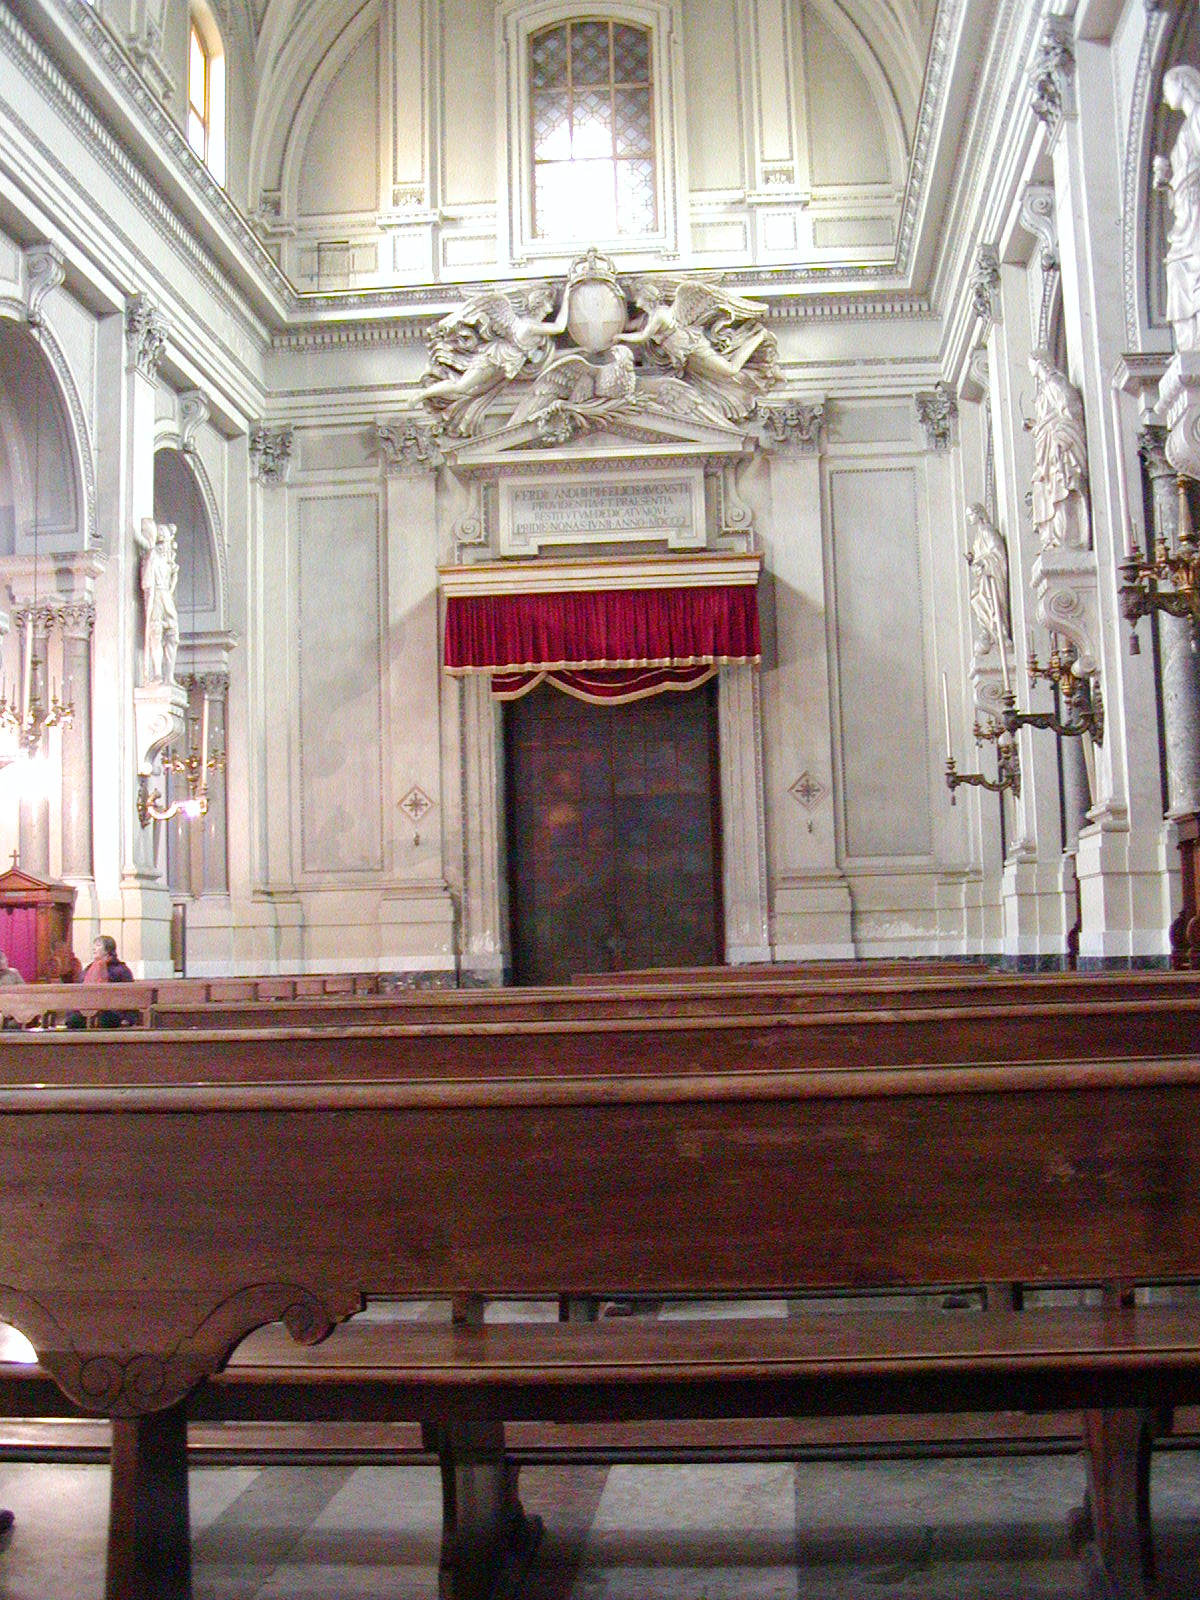 Cathedral of Palermo - 2003-12-24-141015